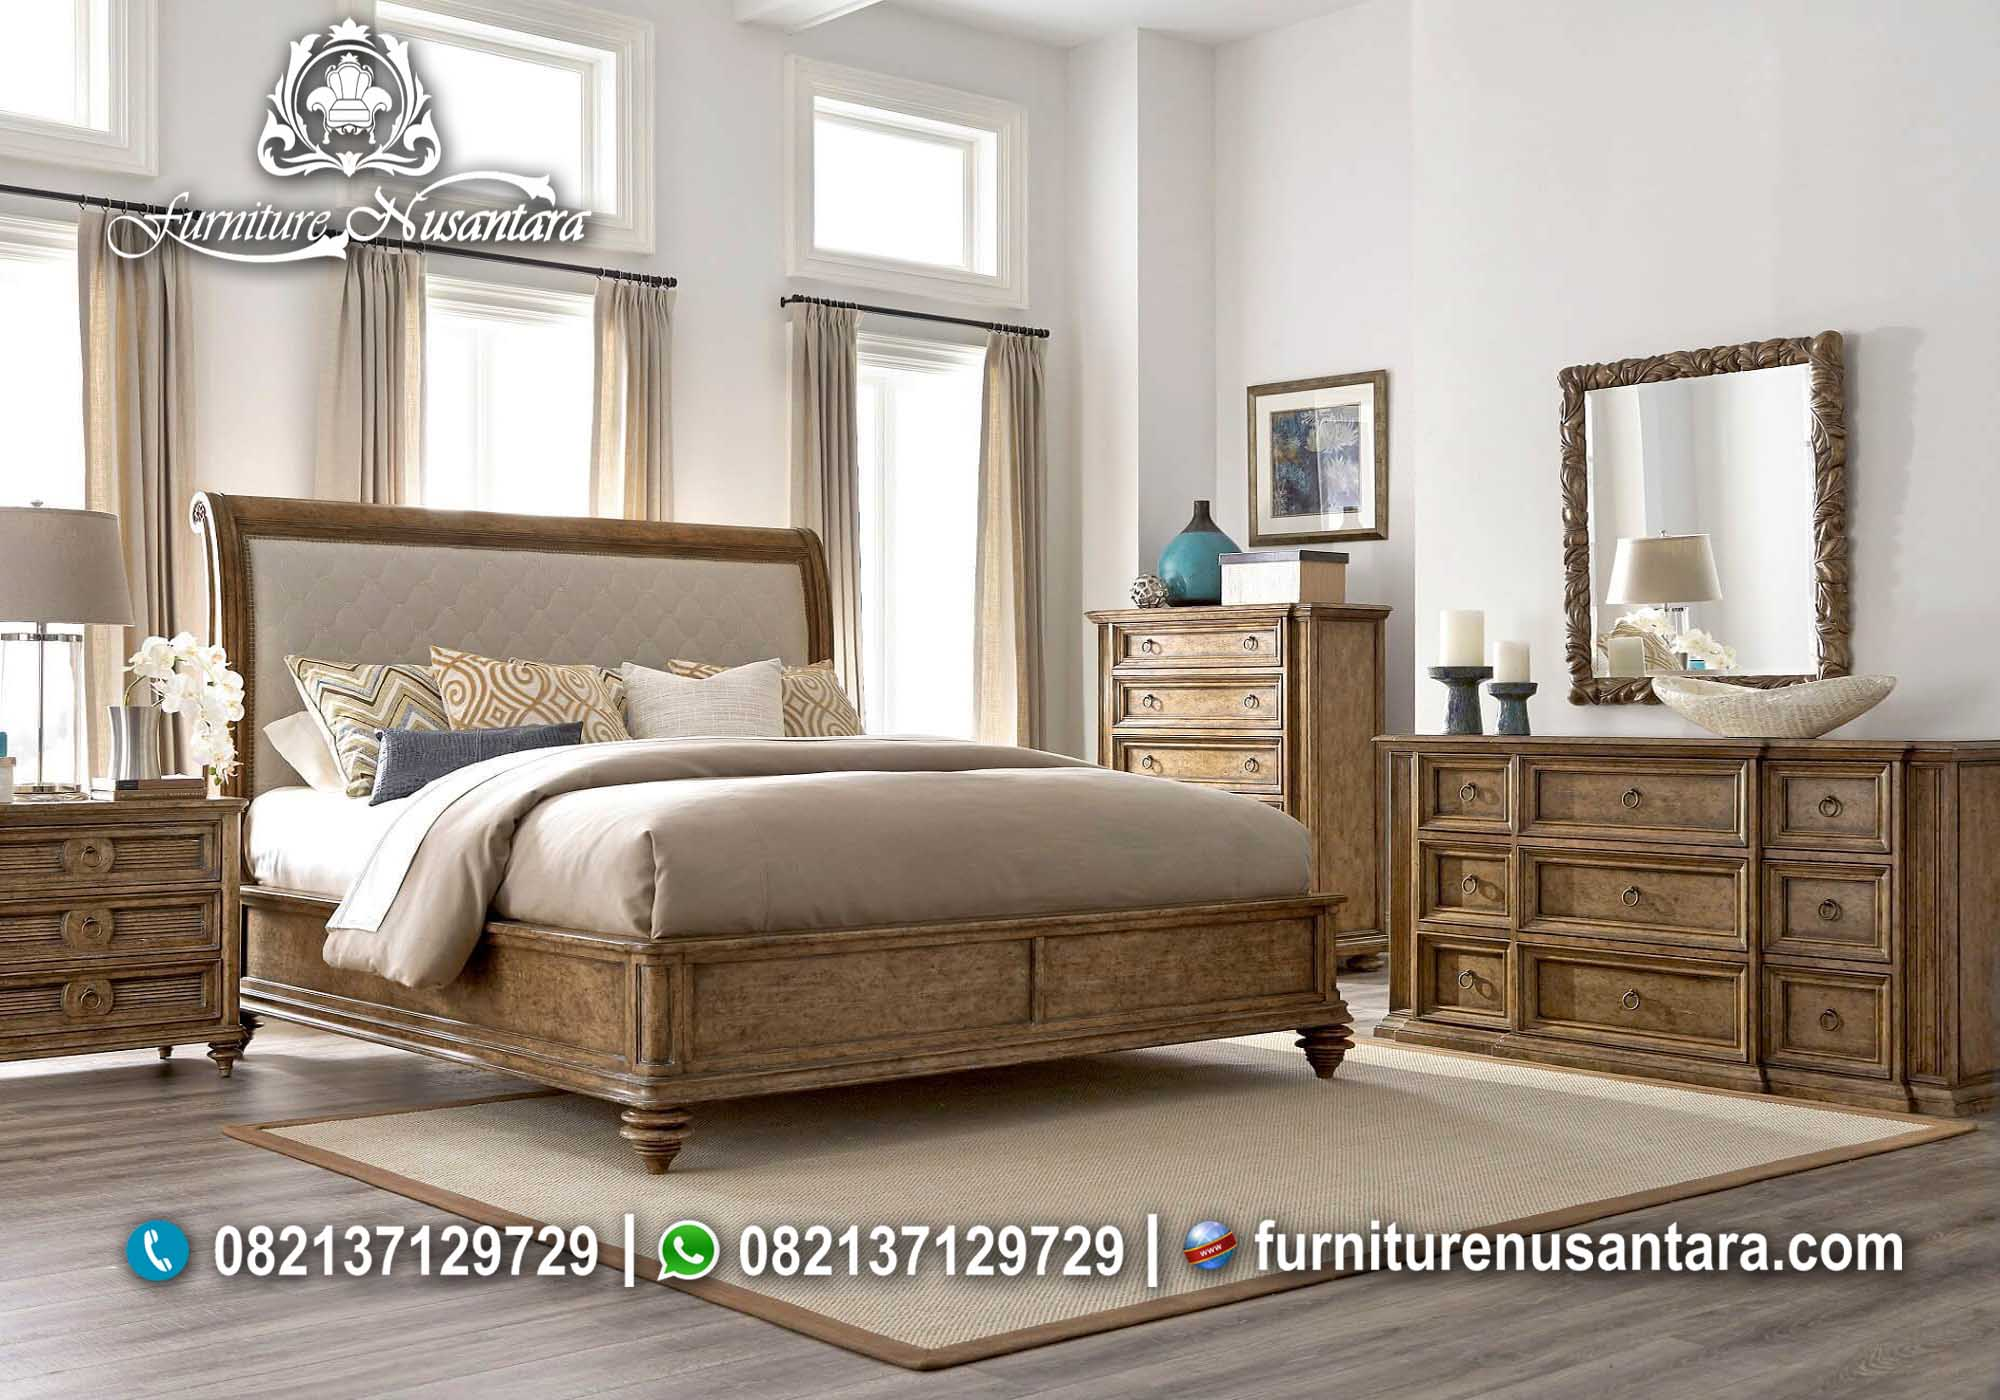 Kamar Set Jati Jepara KS-48, Furniture Nusantara